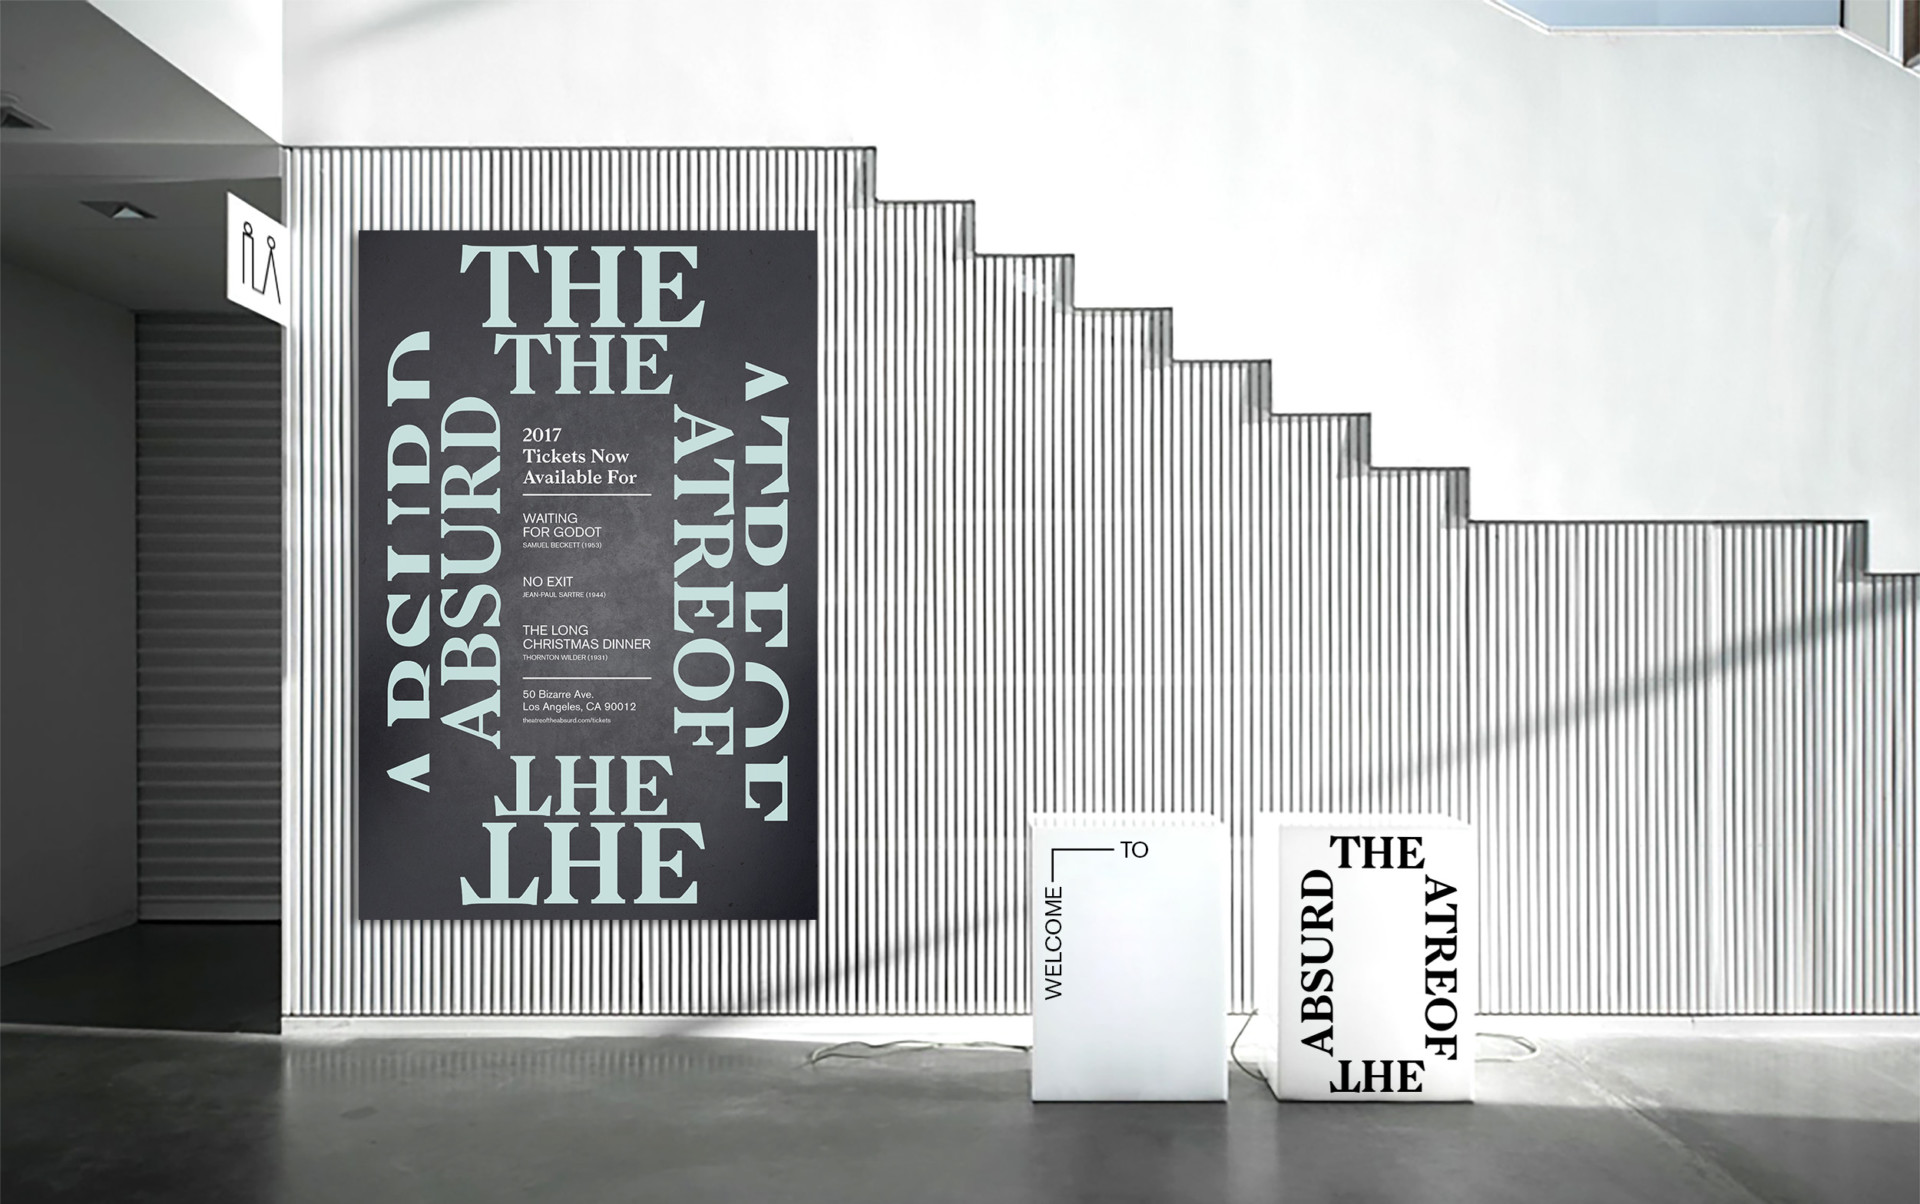 Andrew Chiou → Graphic Designer Theatre of the Absurd